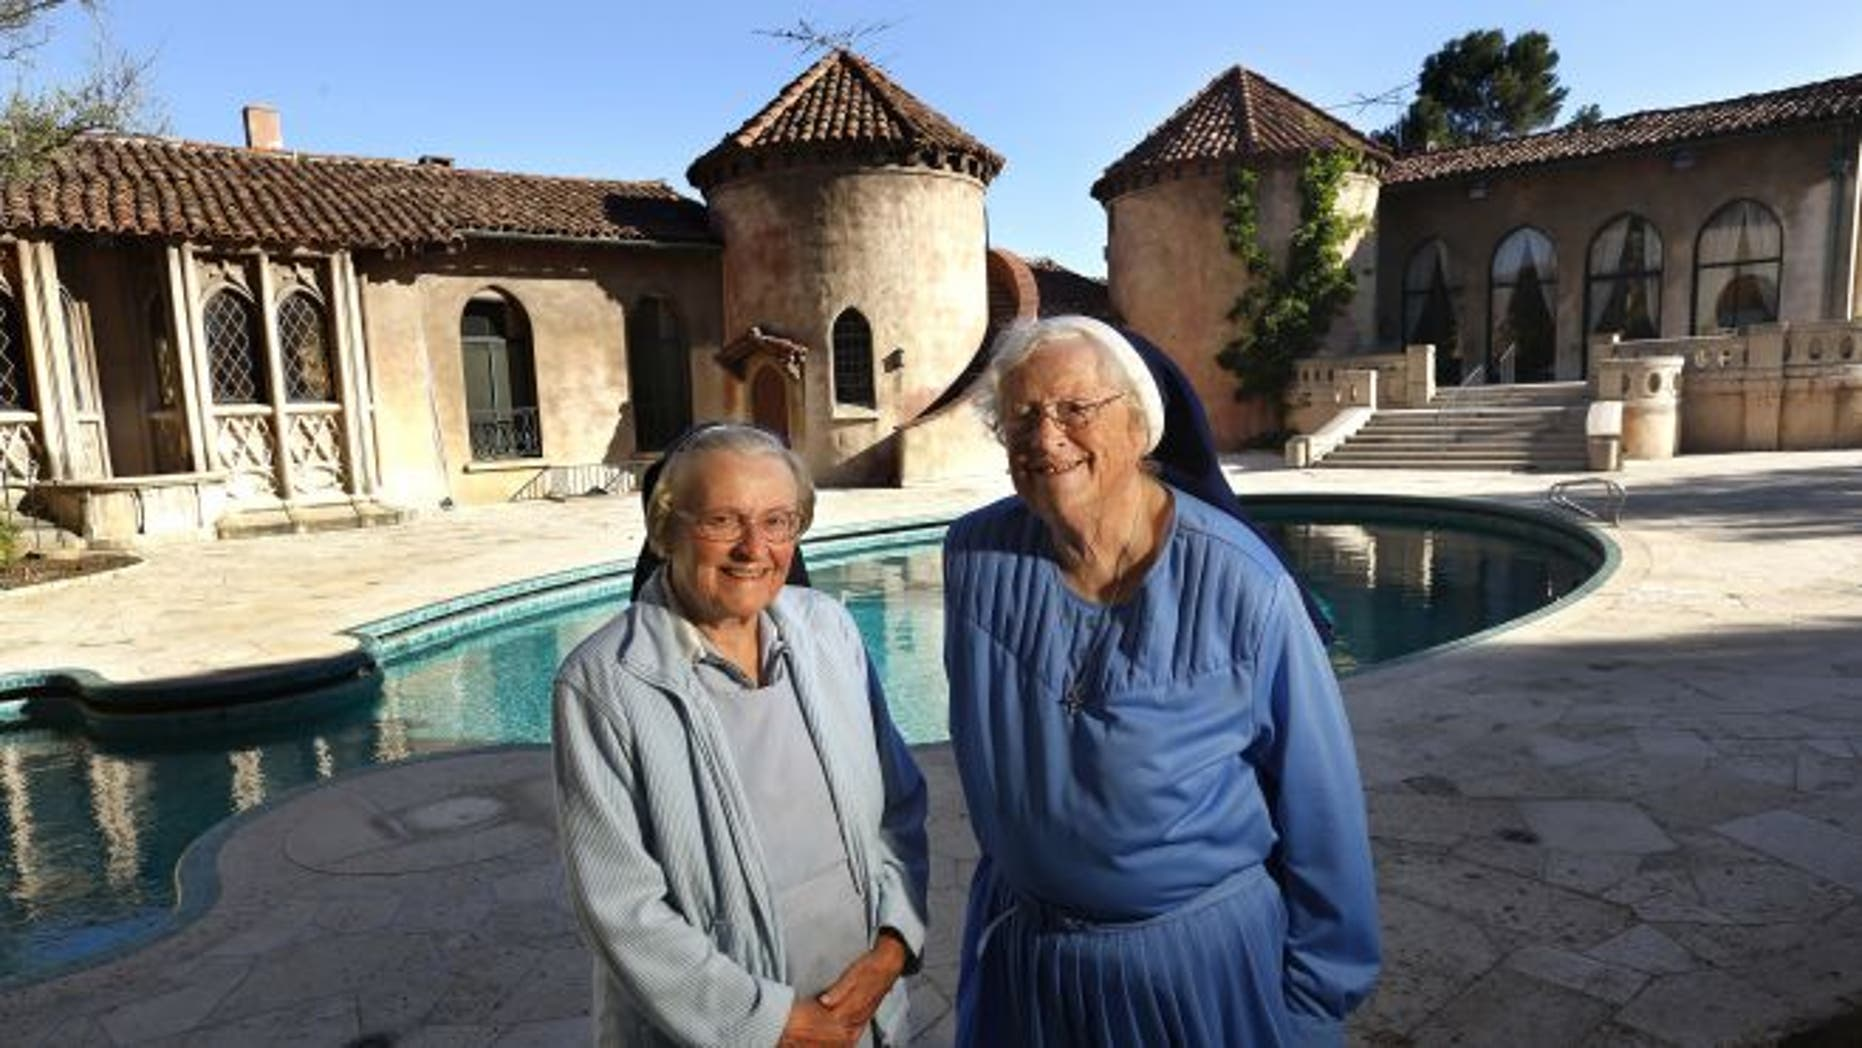 Sister Catherine and Sister Rita outside the Sisters of the IHM Retreat House on June 25, 2015 in Los Feliz, California. (2015 Los Angeles Times)